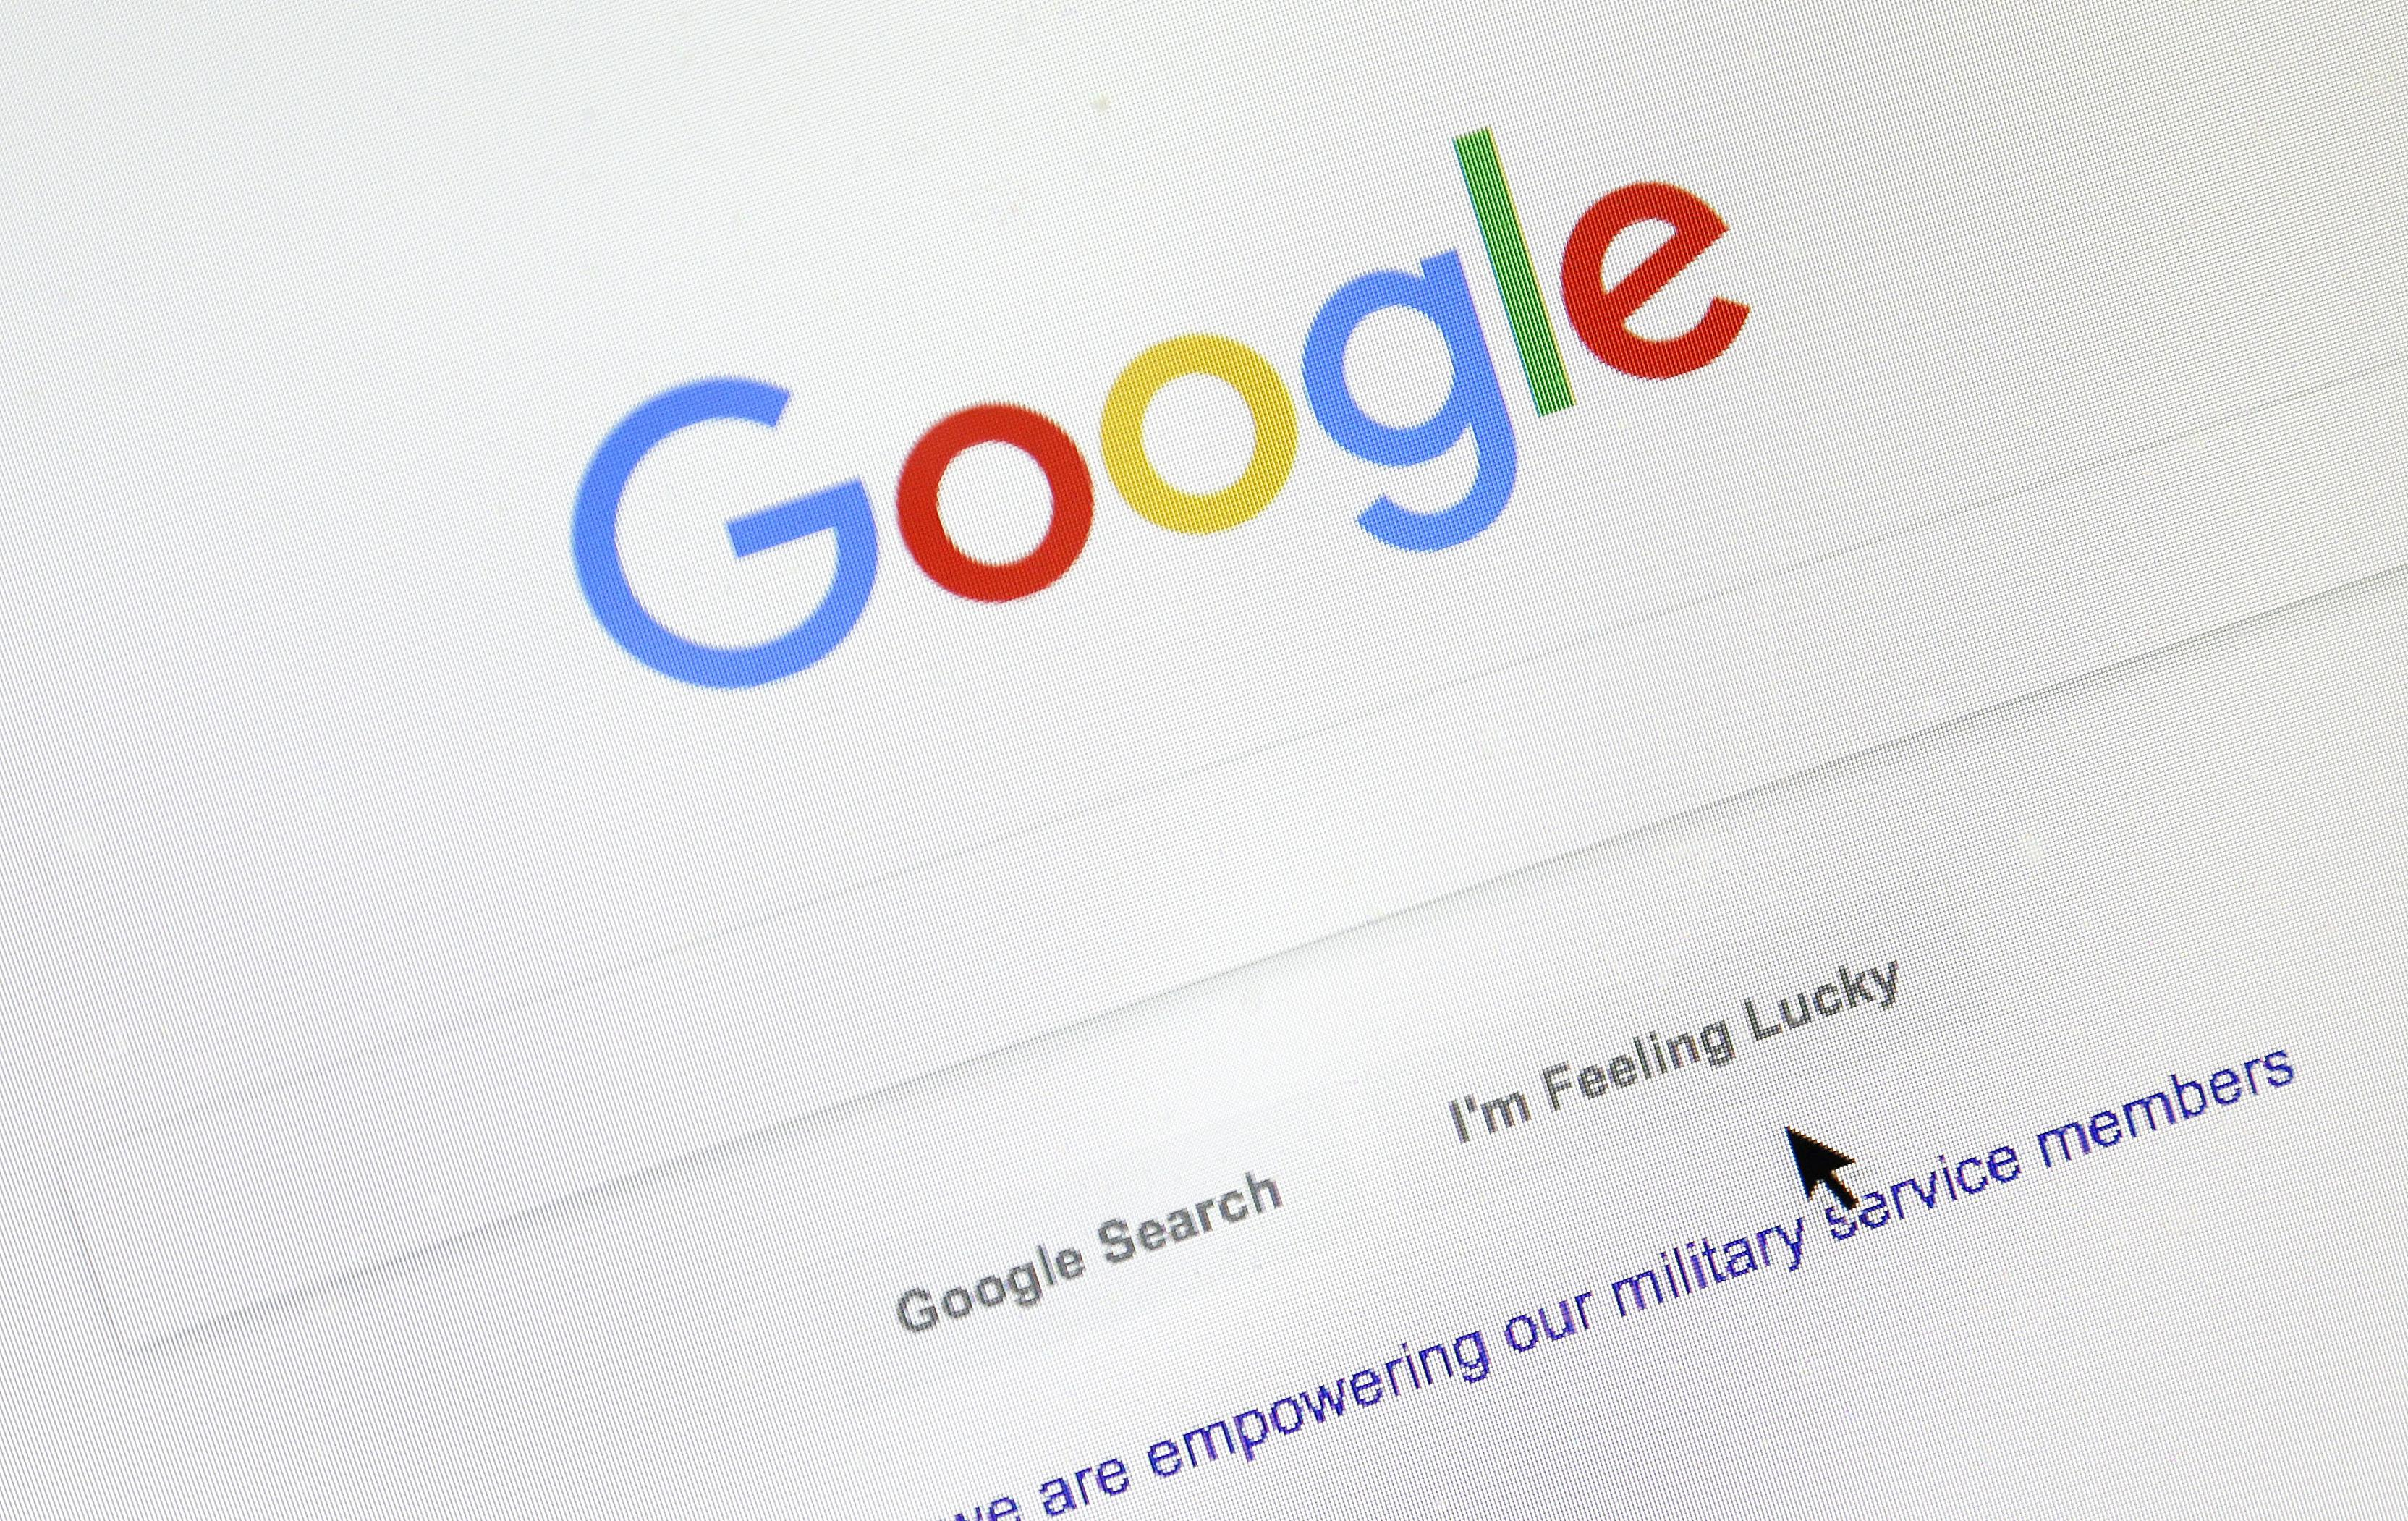 Handful of 'left leaning sources' dominate Google's 'Top Stories,' study finds